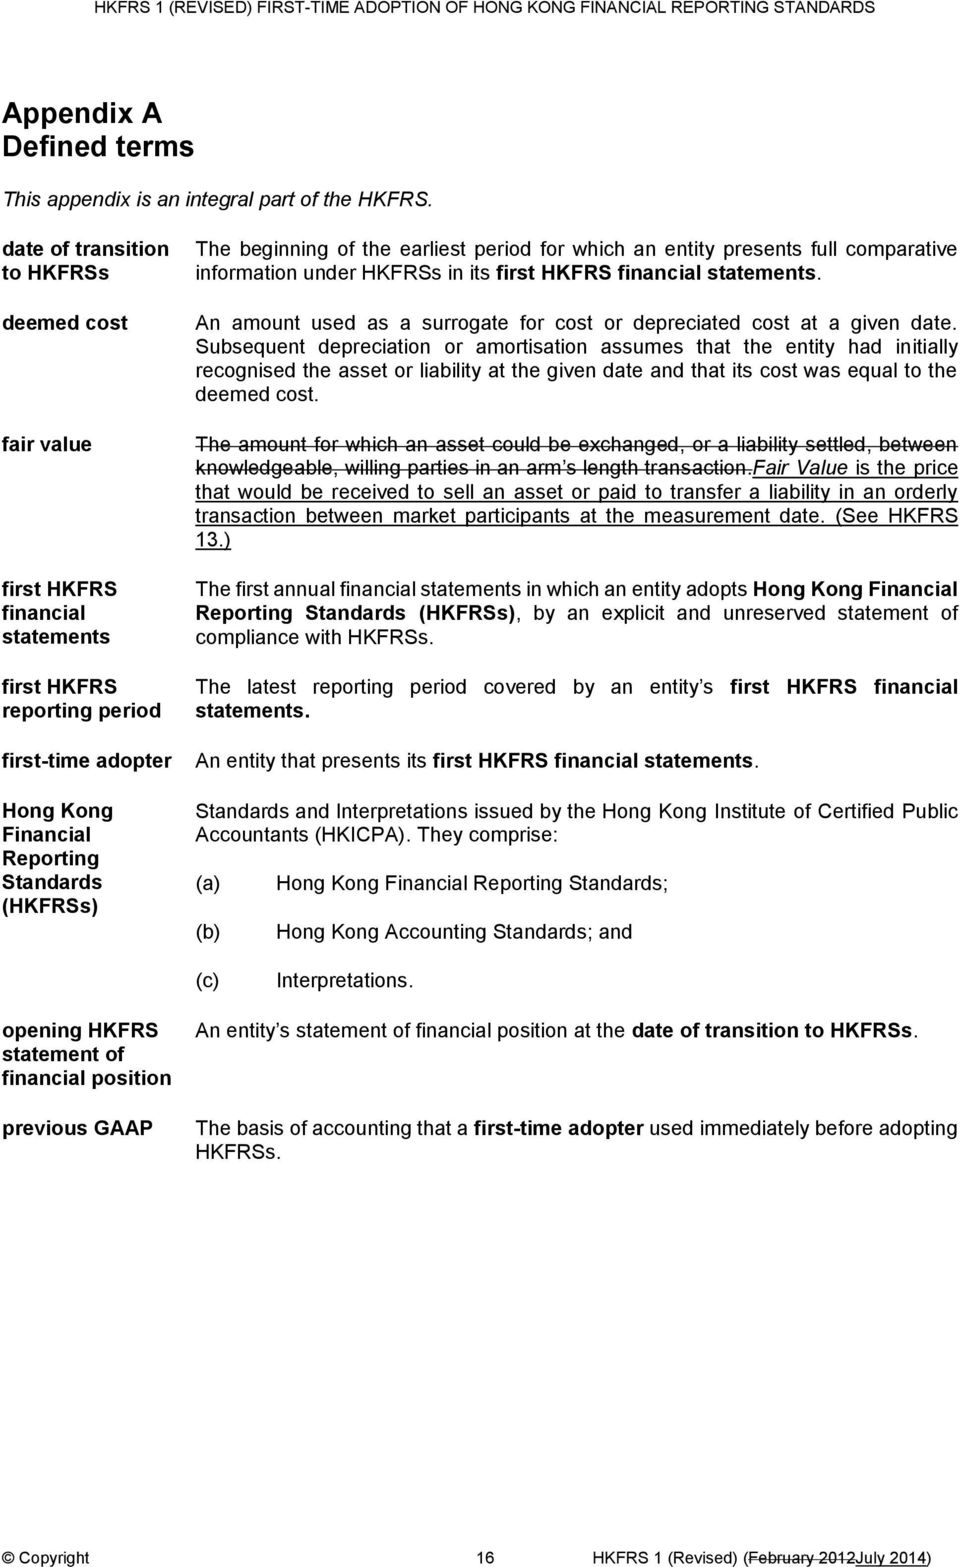 the earliest period for which an entity presents full comparative information under HKFRSs in its first HKFRS financial statements.